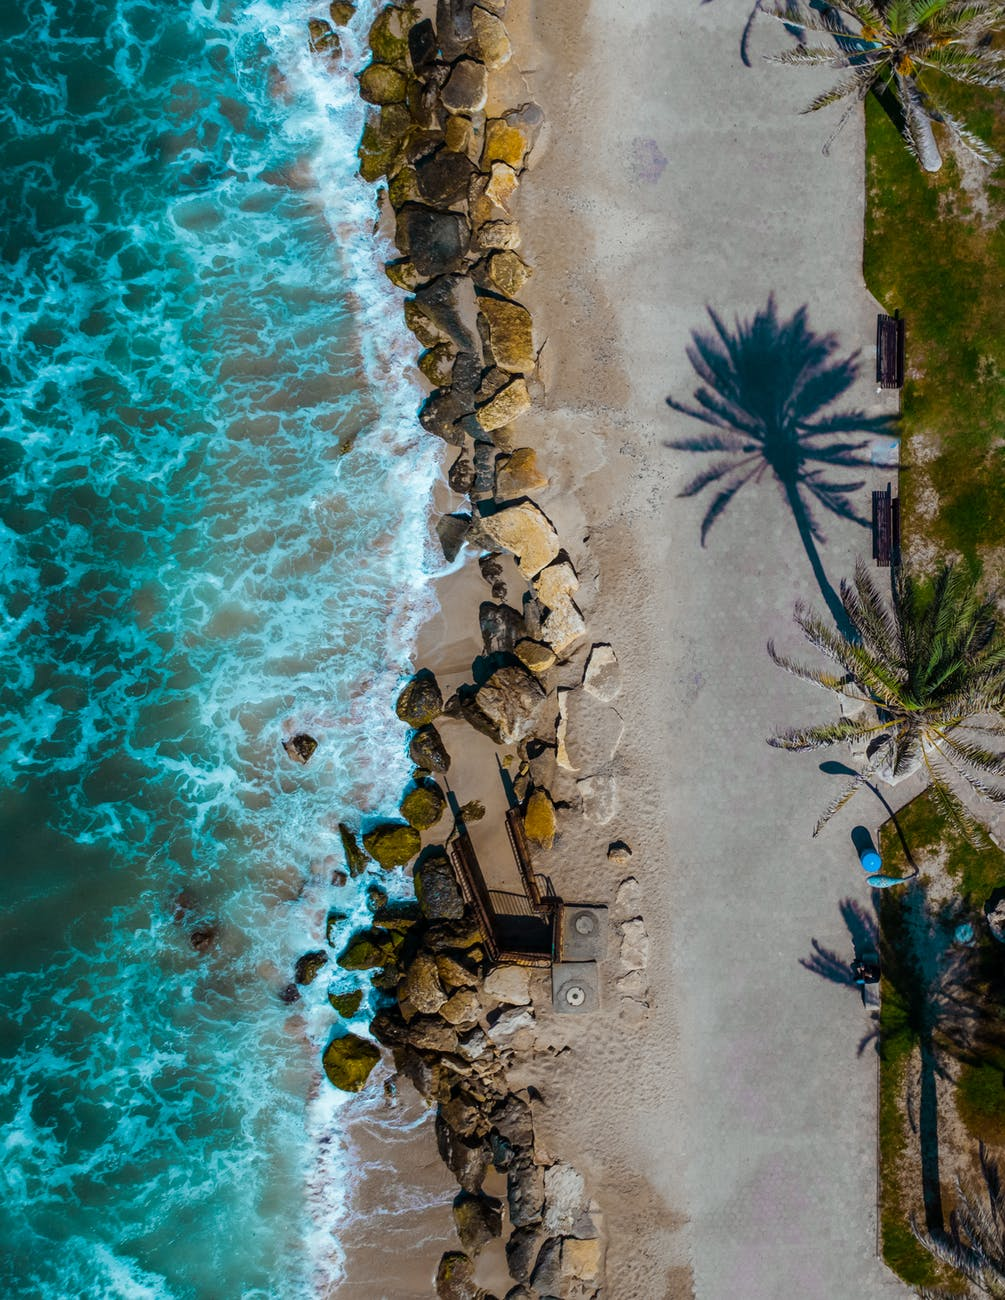 A wavy blue coast with palm trees. When comparing the beautiful beaches, there's no huge difference between living in LA and Miami.